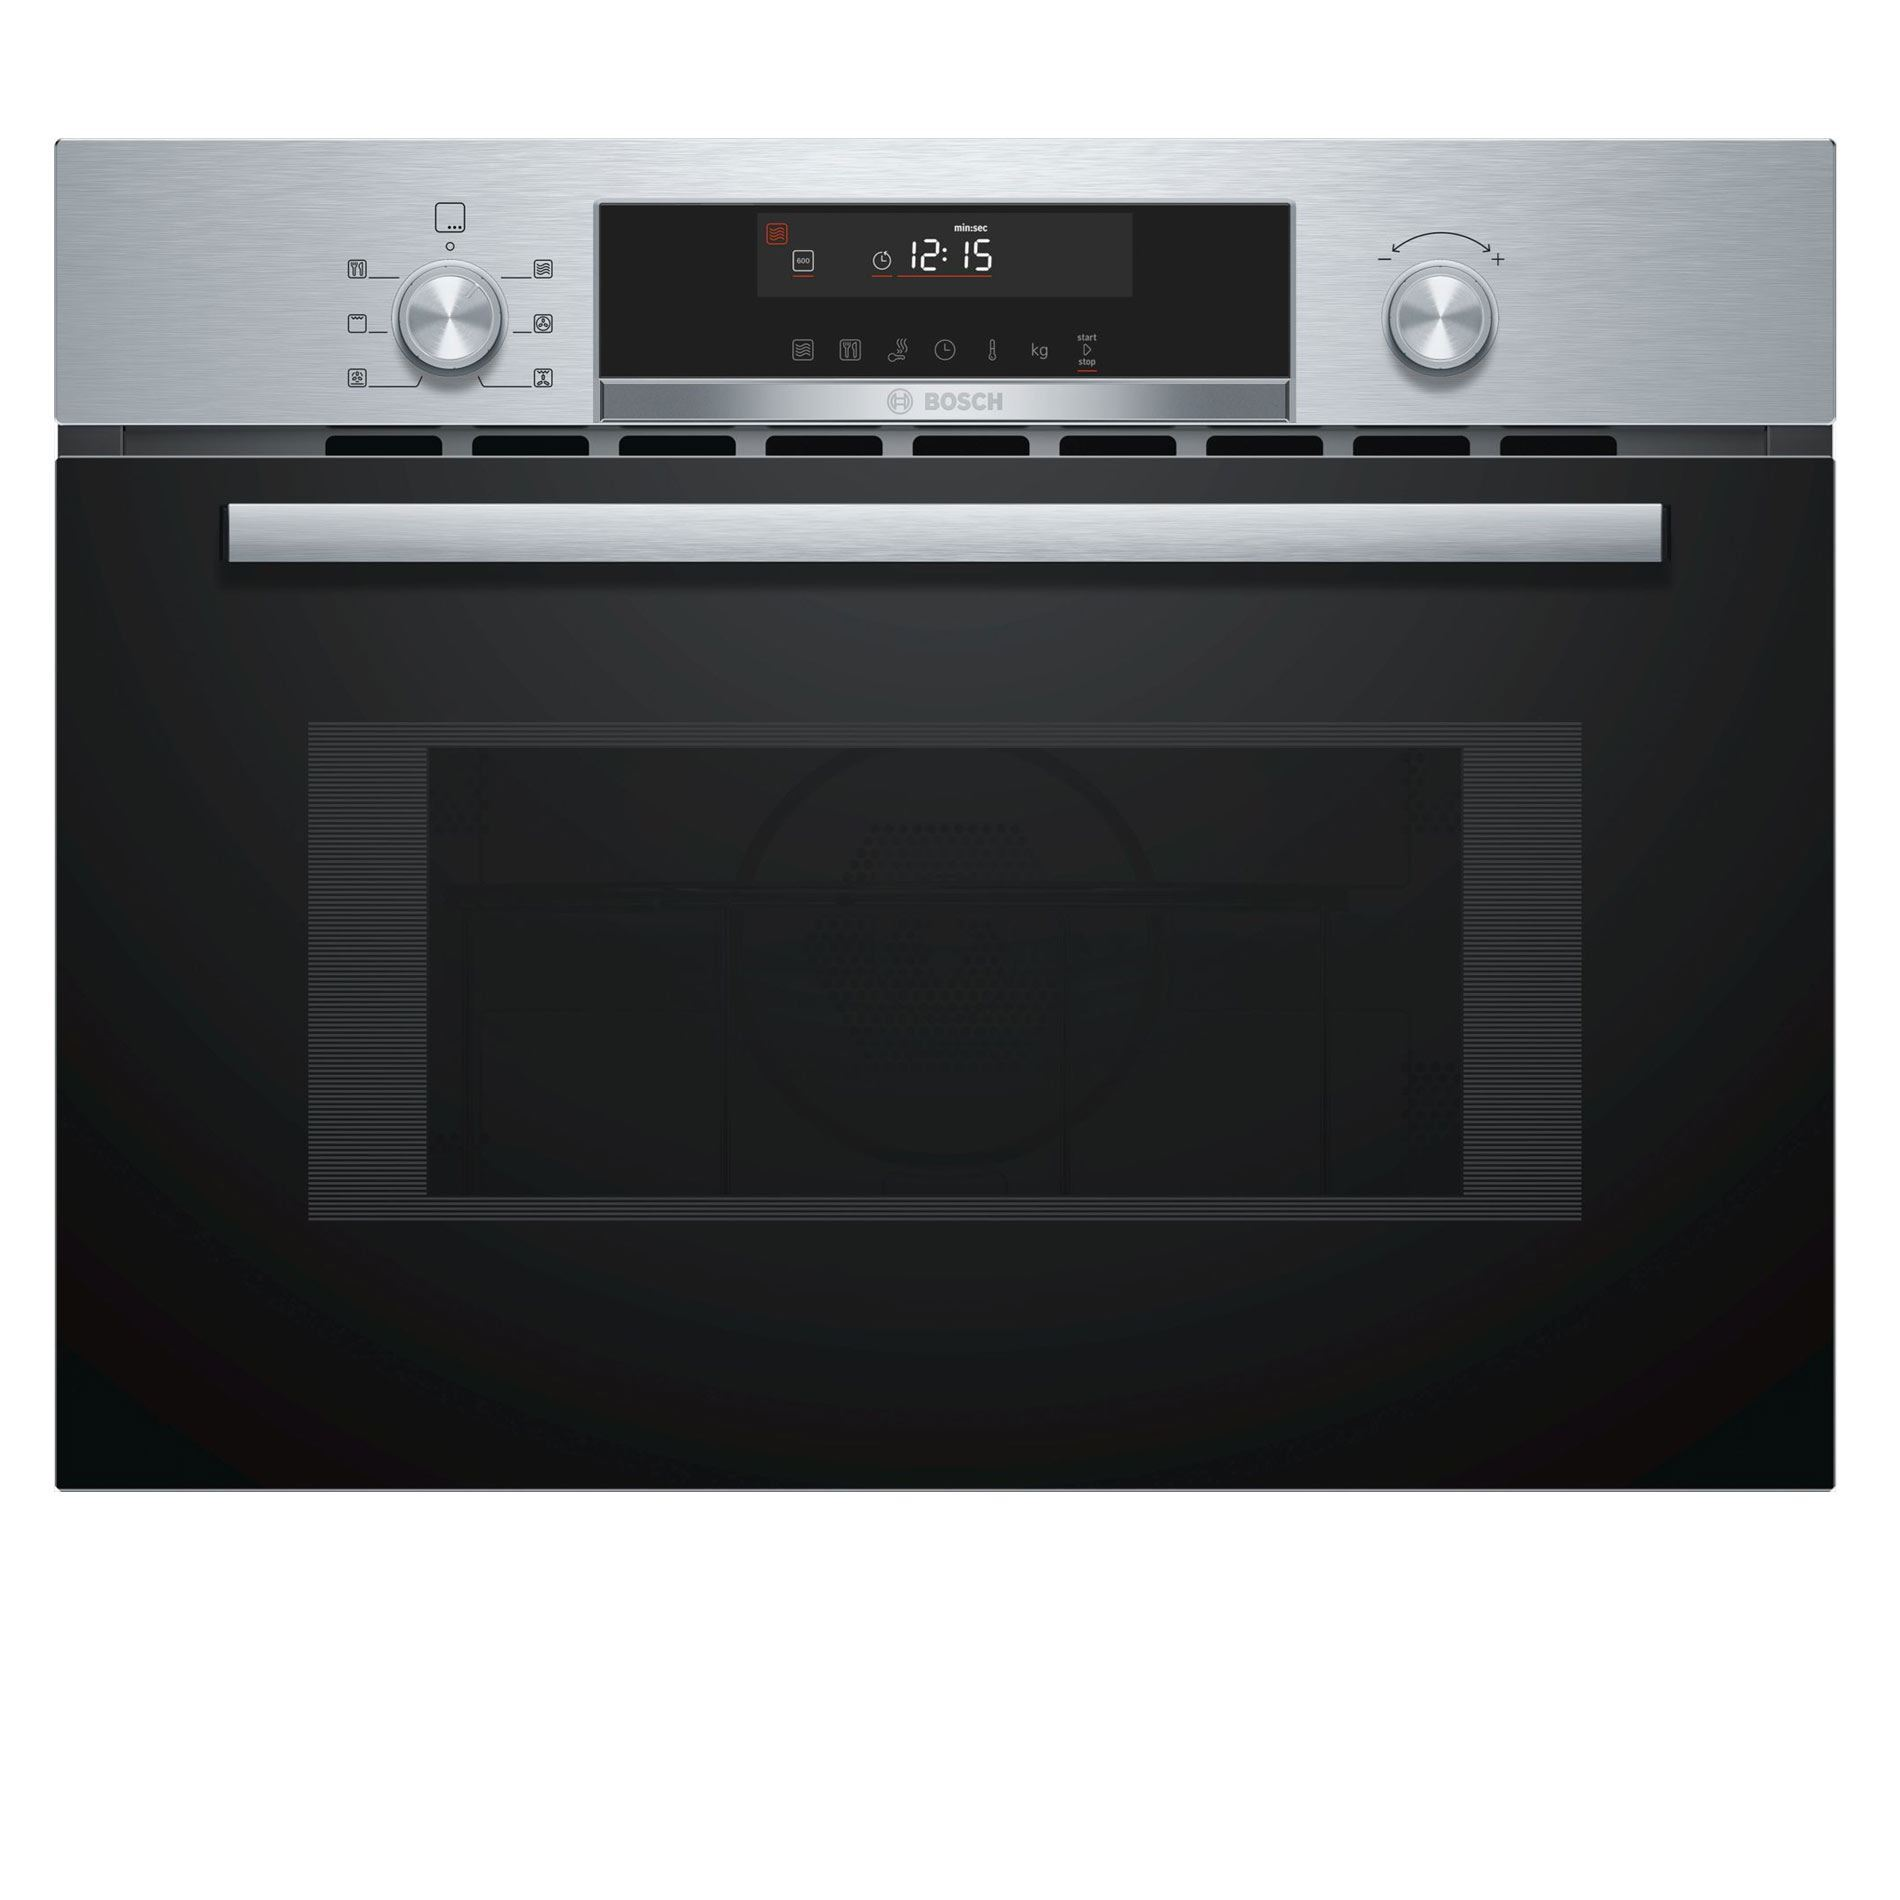 Picture of CMA585MS0B Compact Combi Microwave Oven